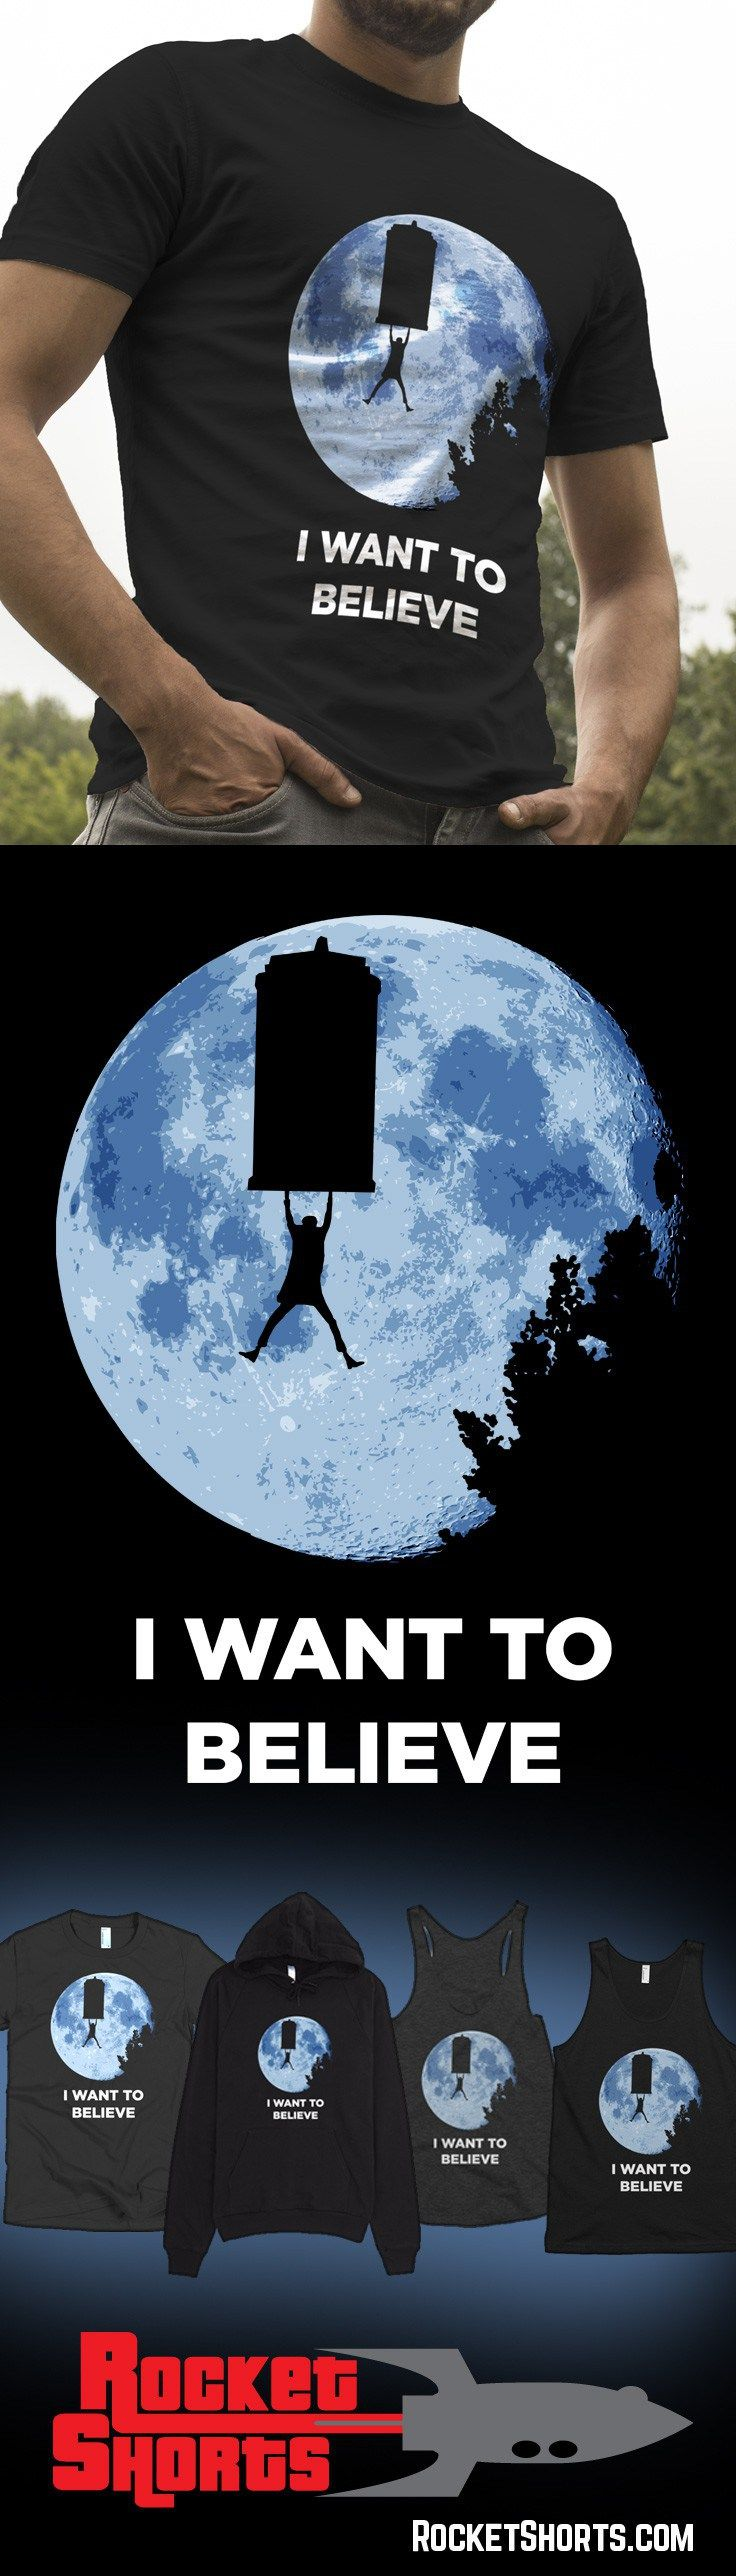 I Want To Believe - Doctor Who, E.T. and X-Files Mashup - Be sure to follow us for more cool stuff!